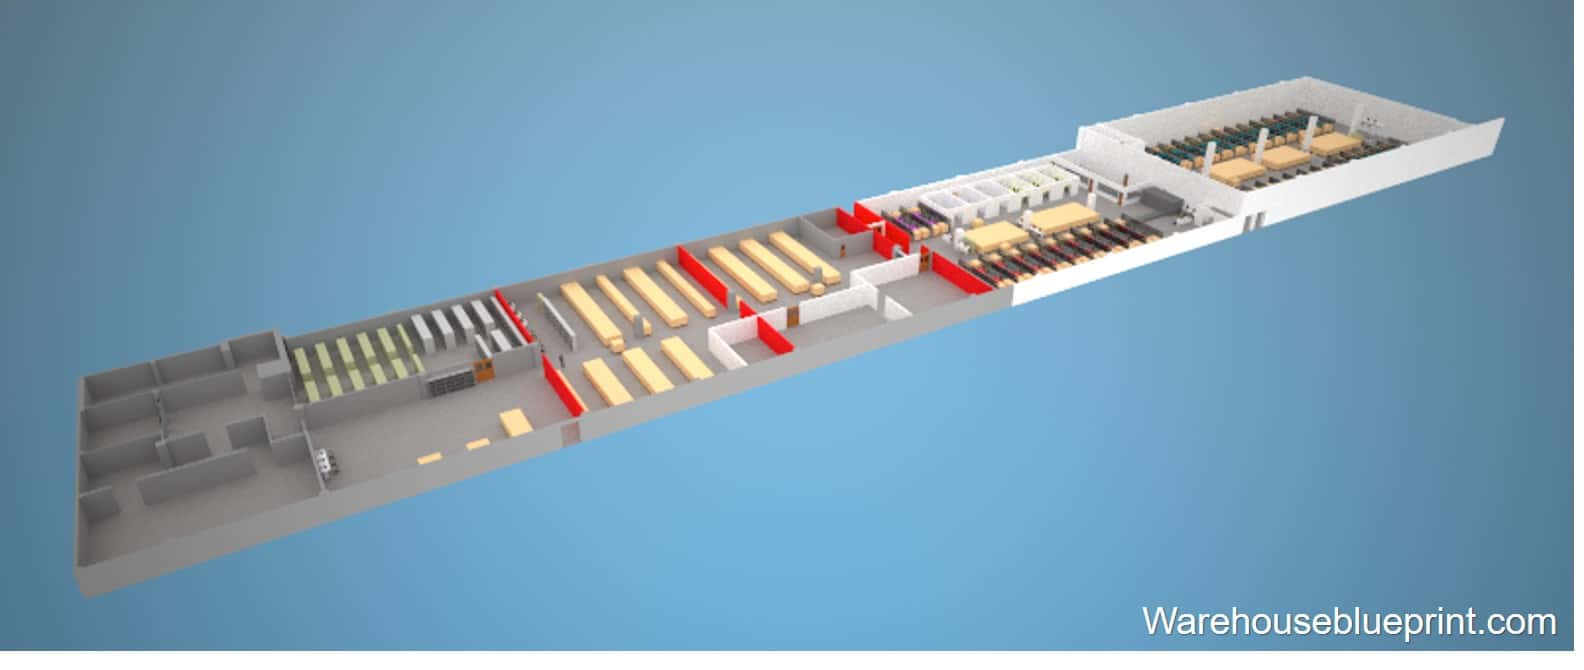 Warehouse Layout 11 - rendered